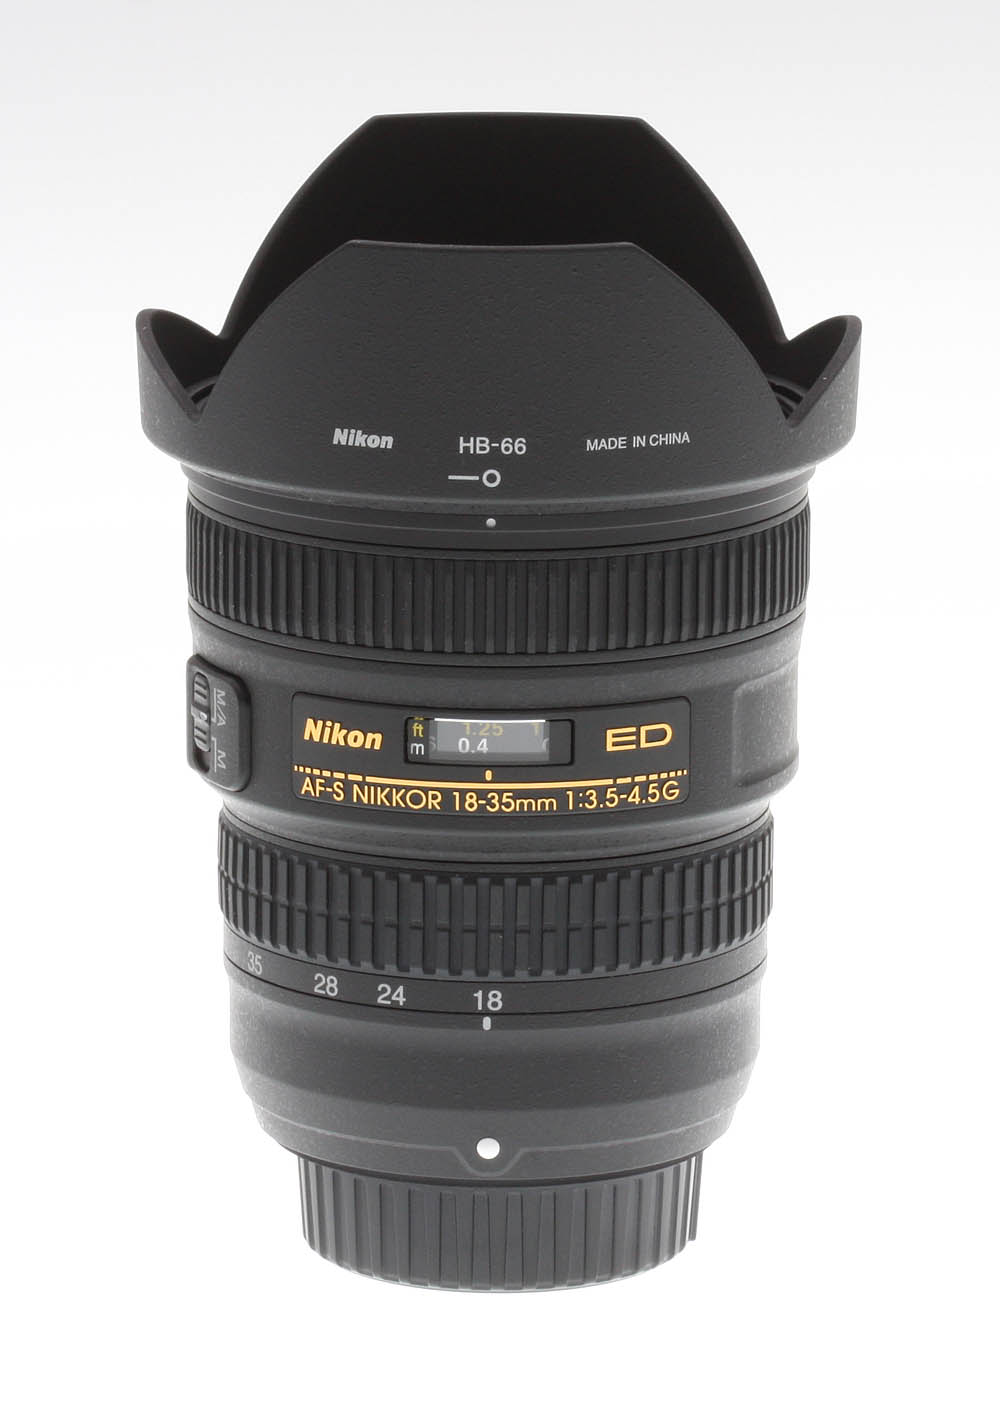 nikon 18 35mm f 3 5 4 5g ed af s nikkor review. Black Bedroom Furniture Sets. Home Design Ideas